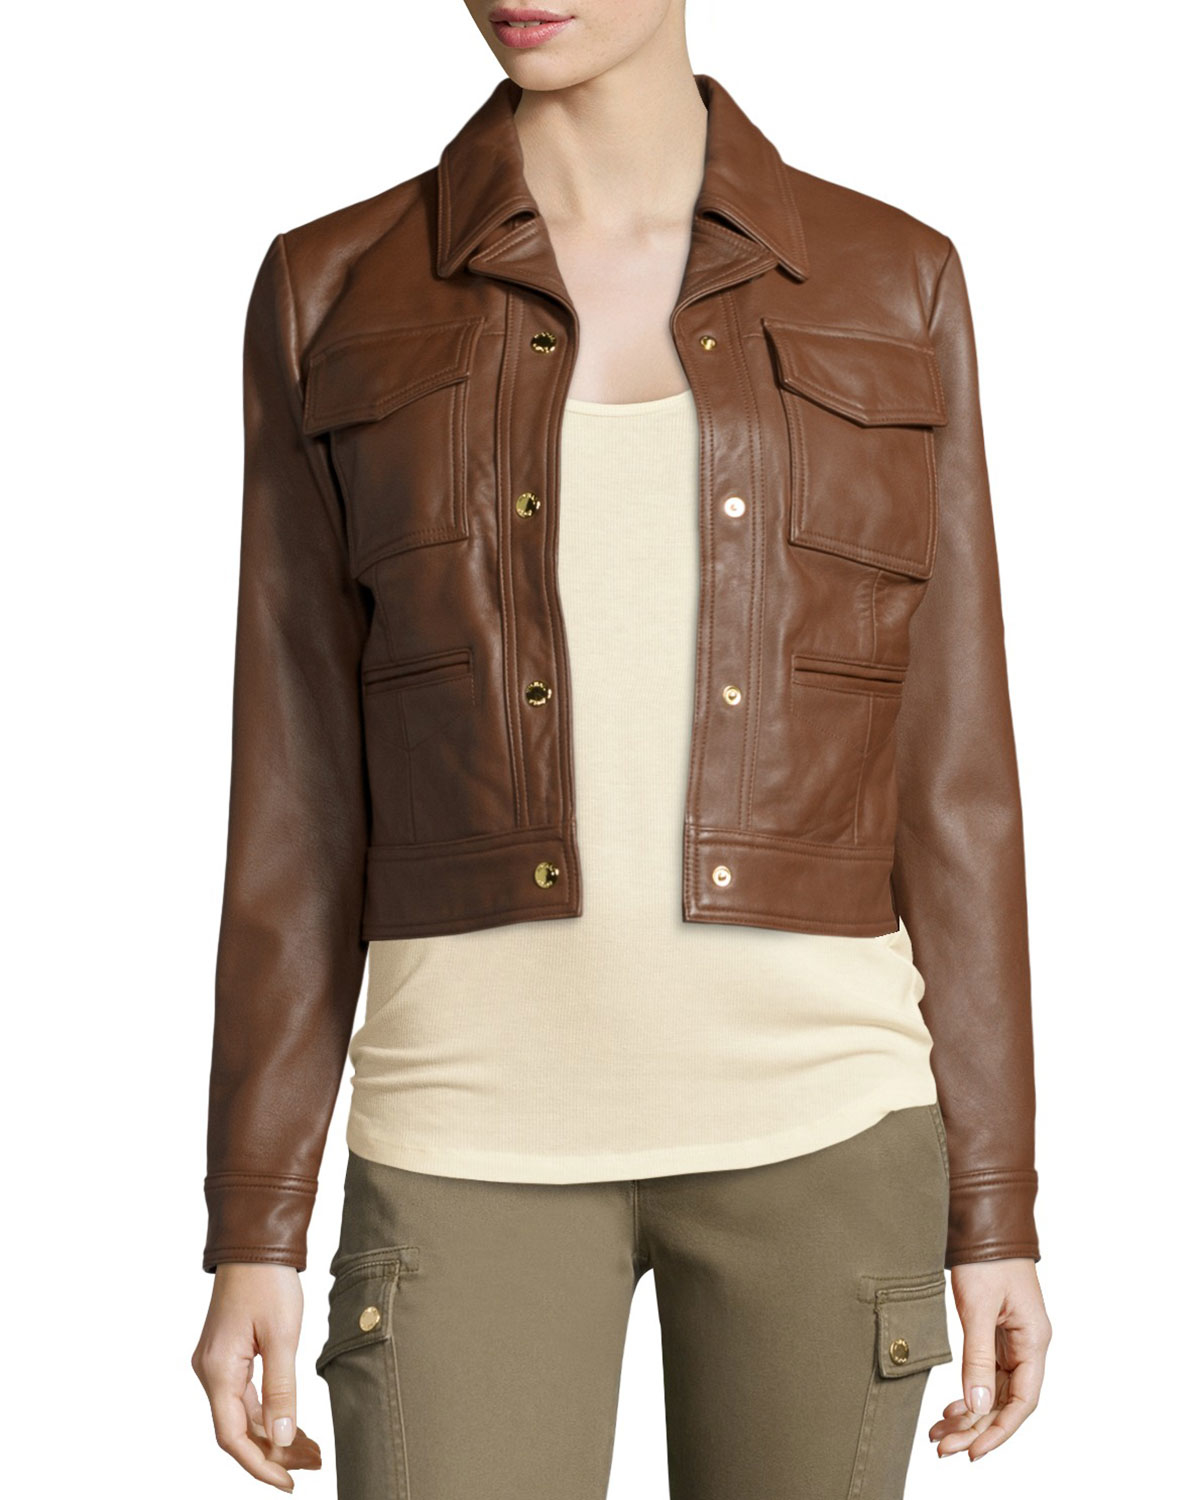 Michael michael kors Cropped Leather Jacket in Brown | Lyst